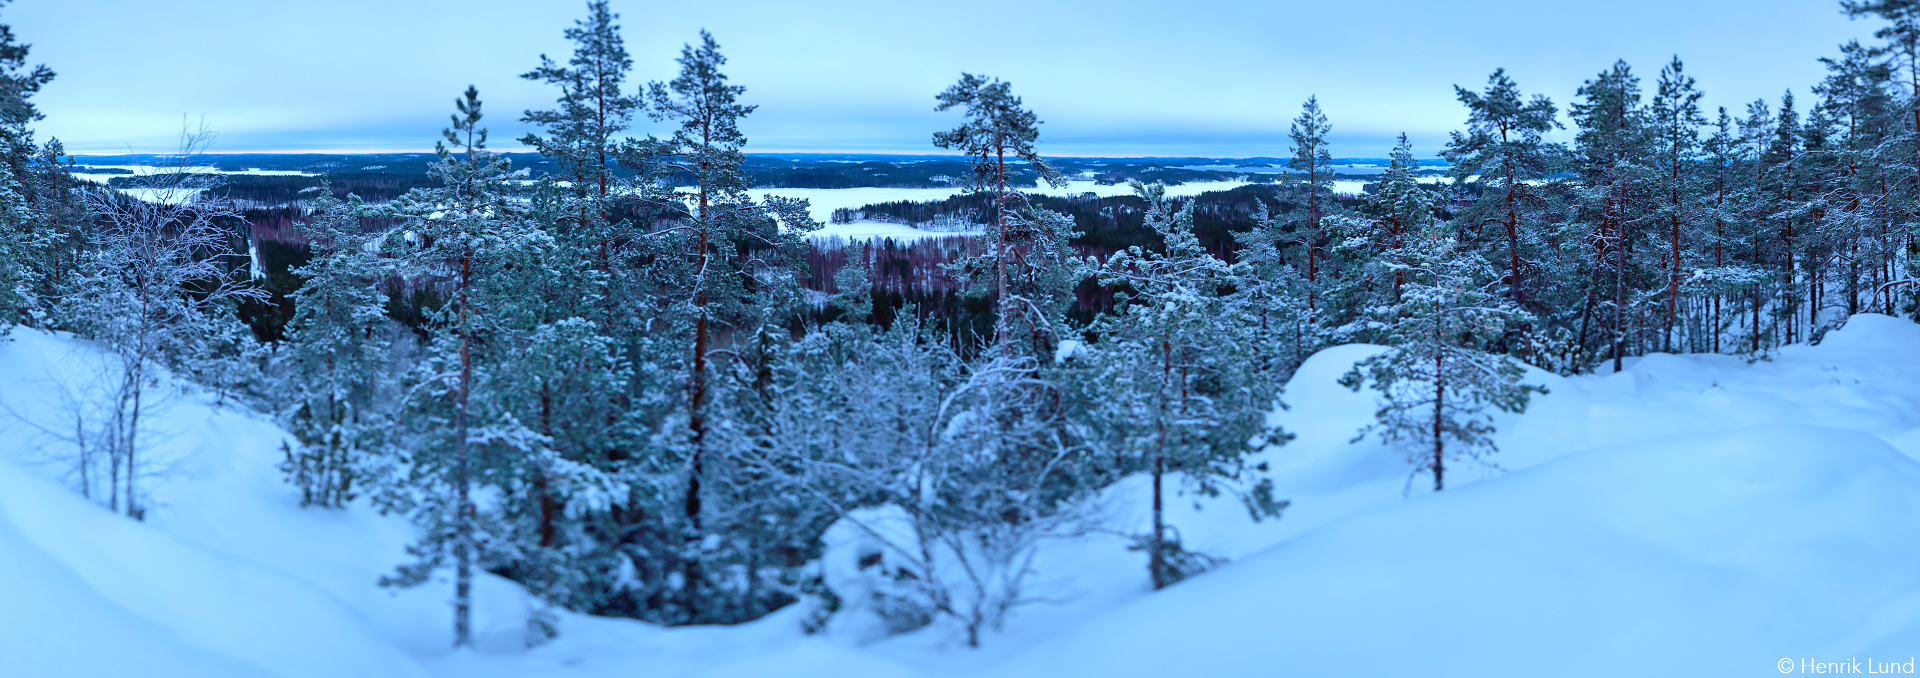 Panoramic prewinter shot from Neitvuori in Anttola, Finland. December 2016.